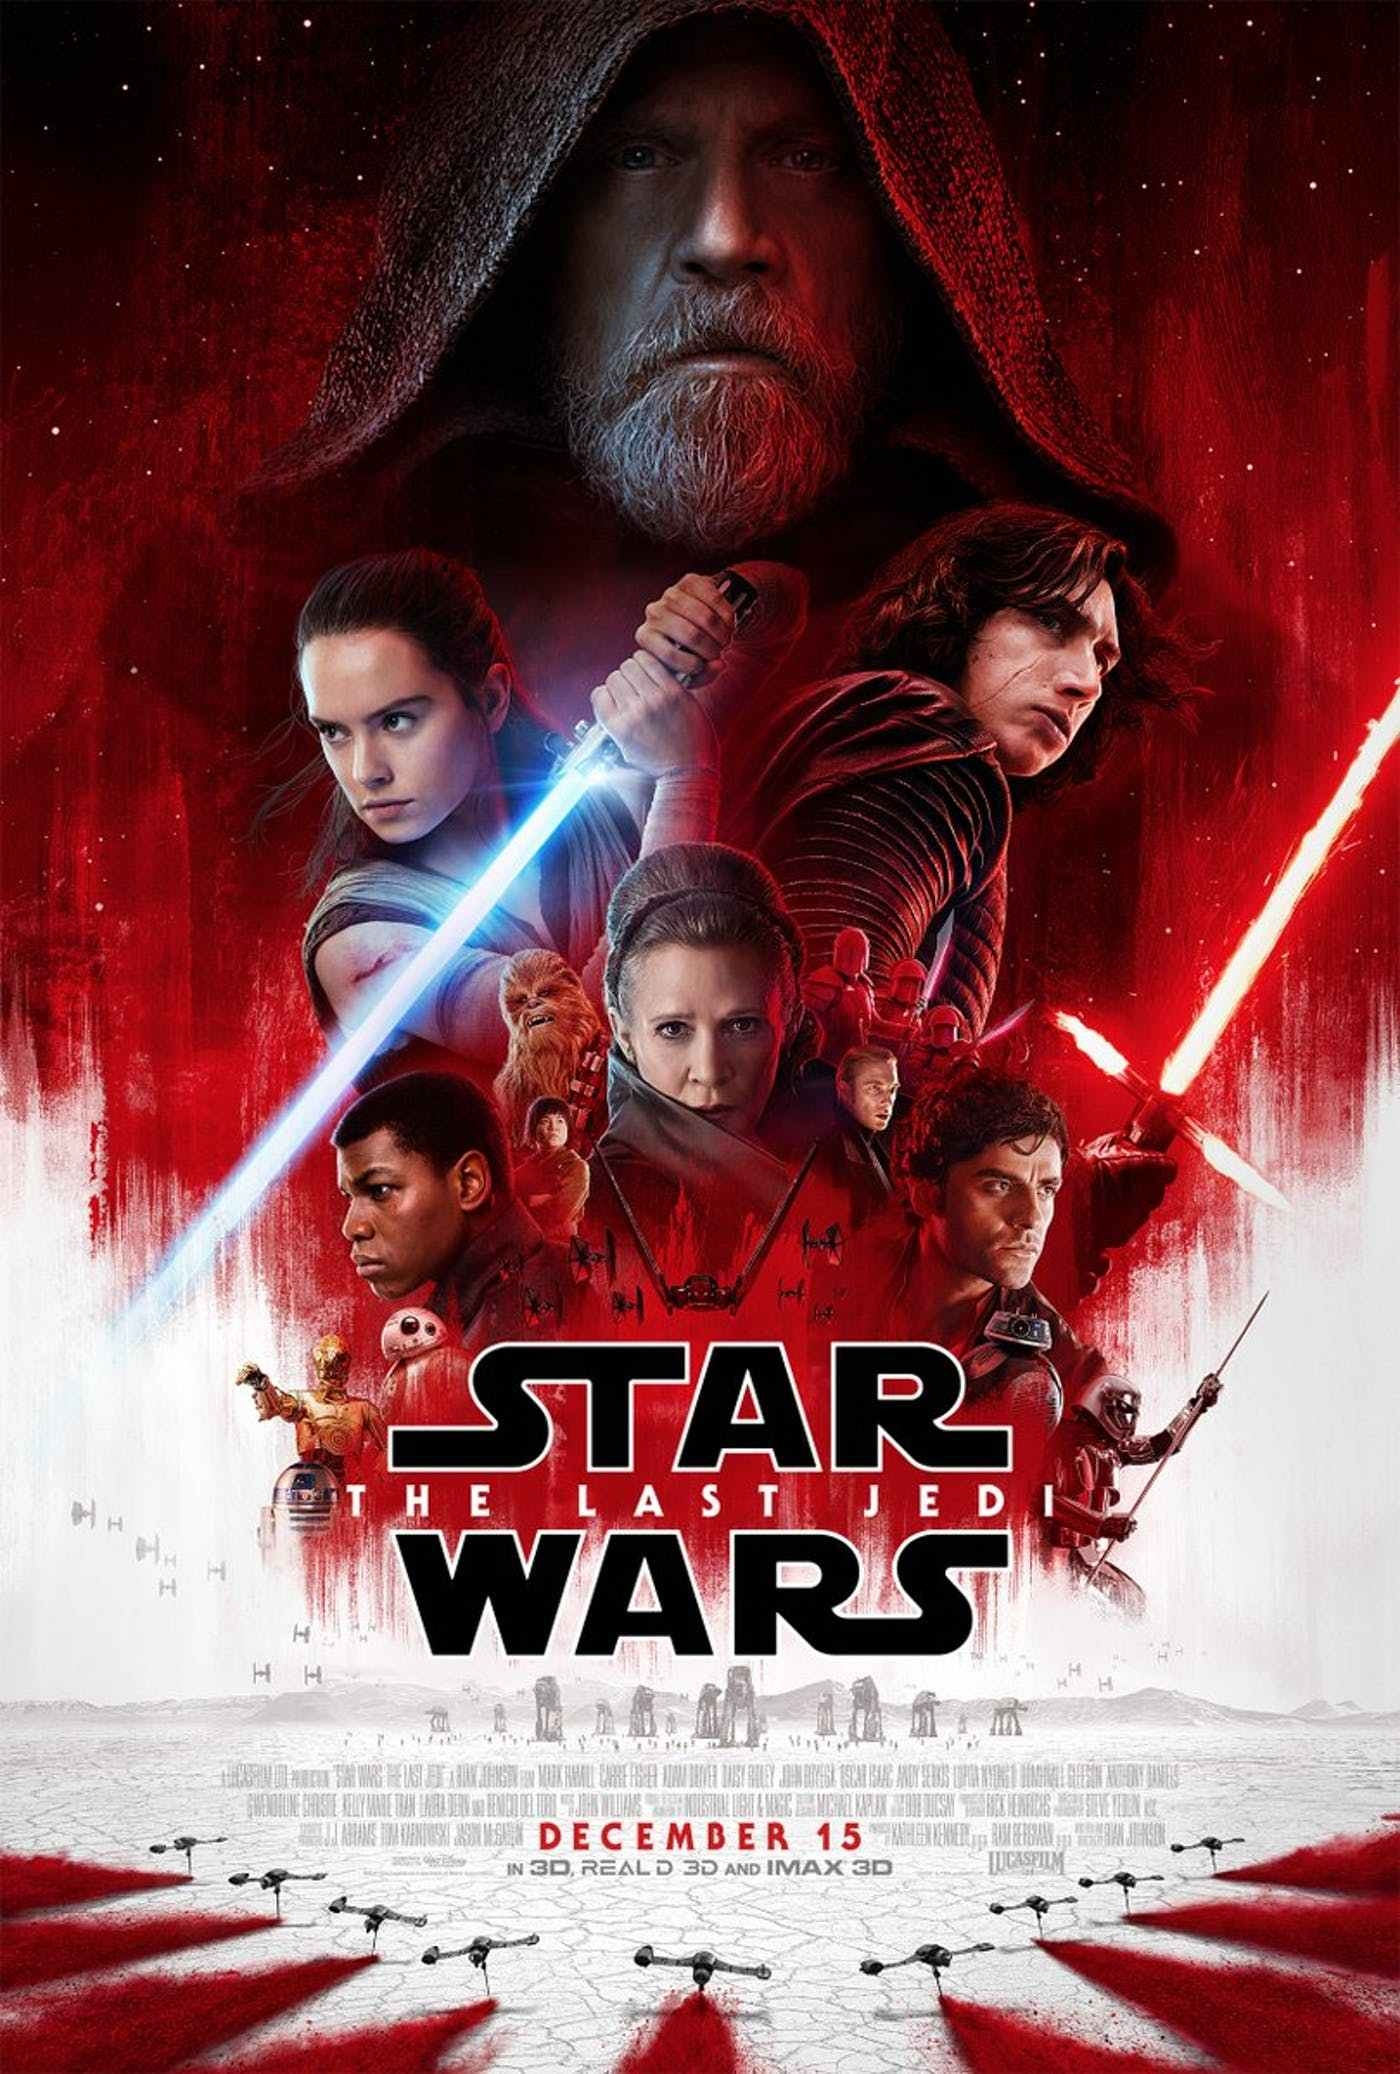 Star Wars: The Last Jedi, opening in theaters December 15th